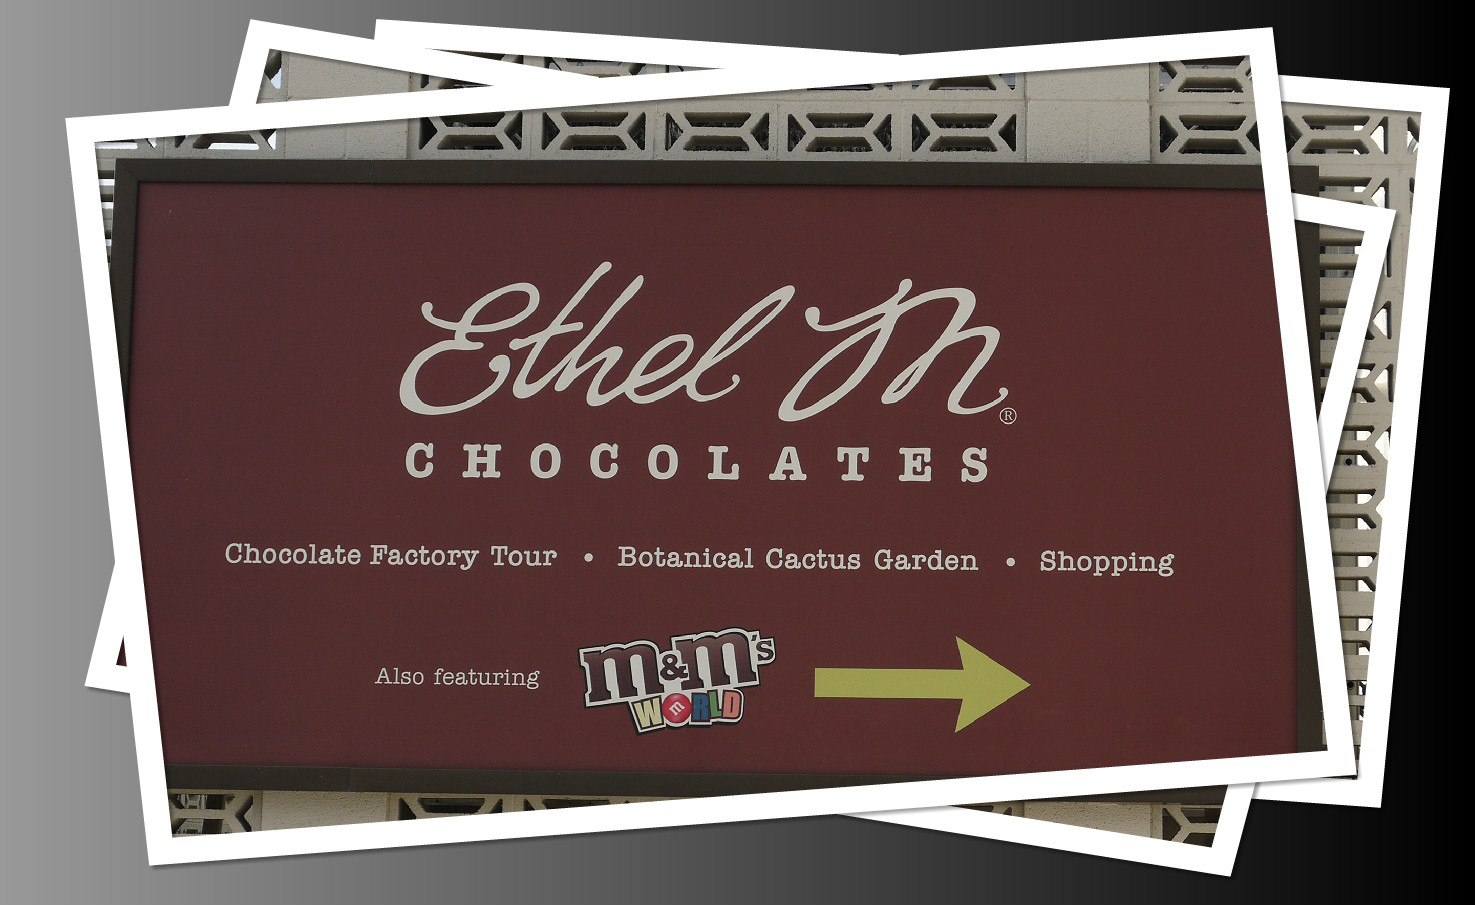 Ethel M Chocolates - Super cute chocolate factory! - RosarioKnows.com